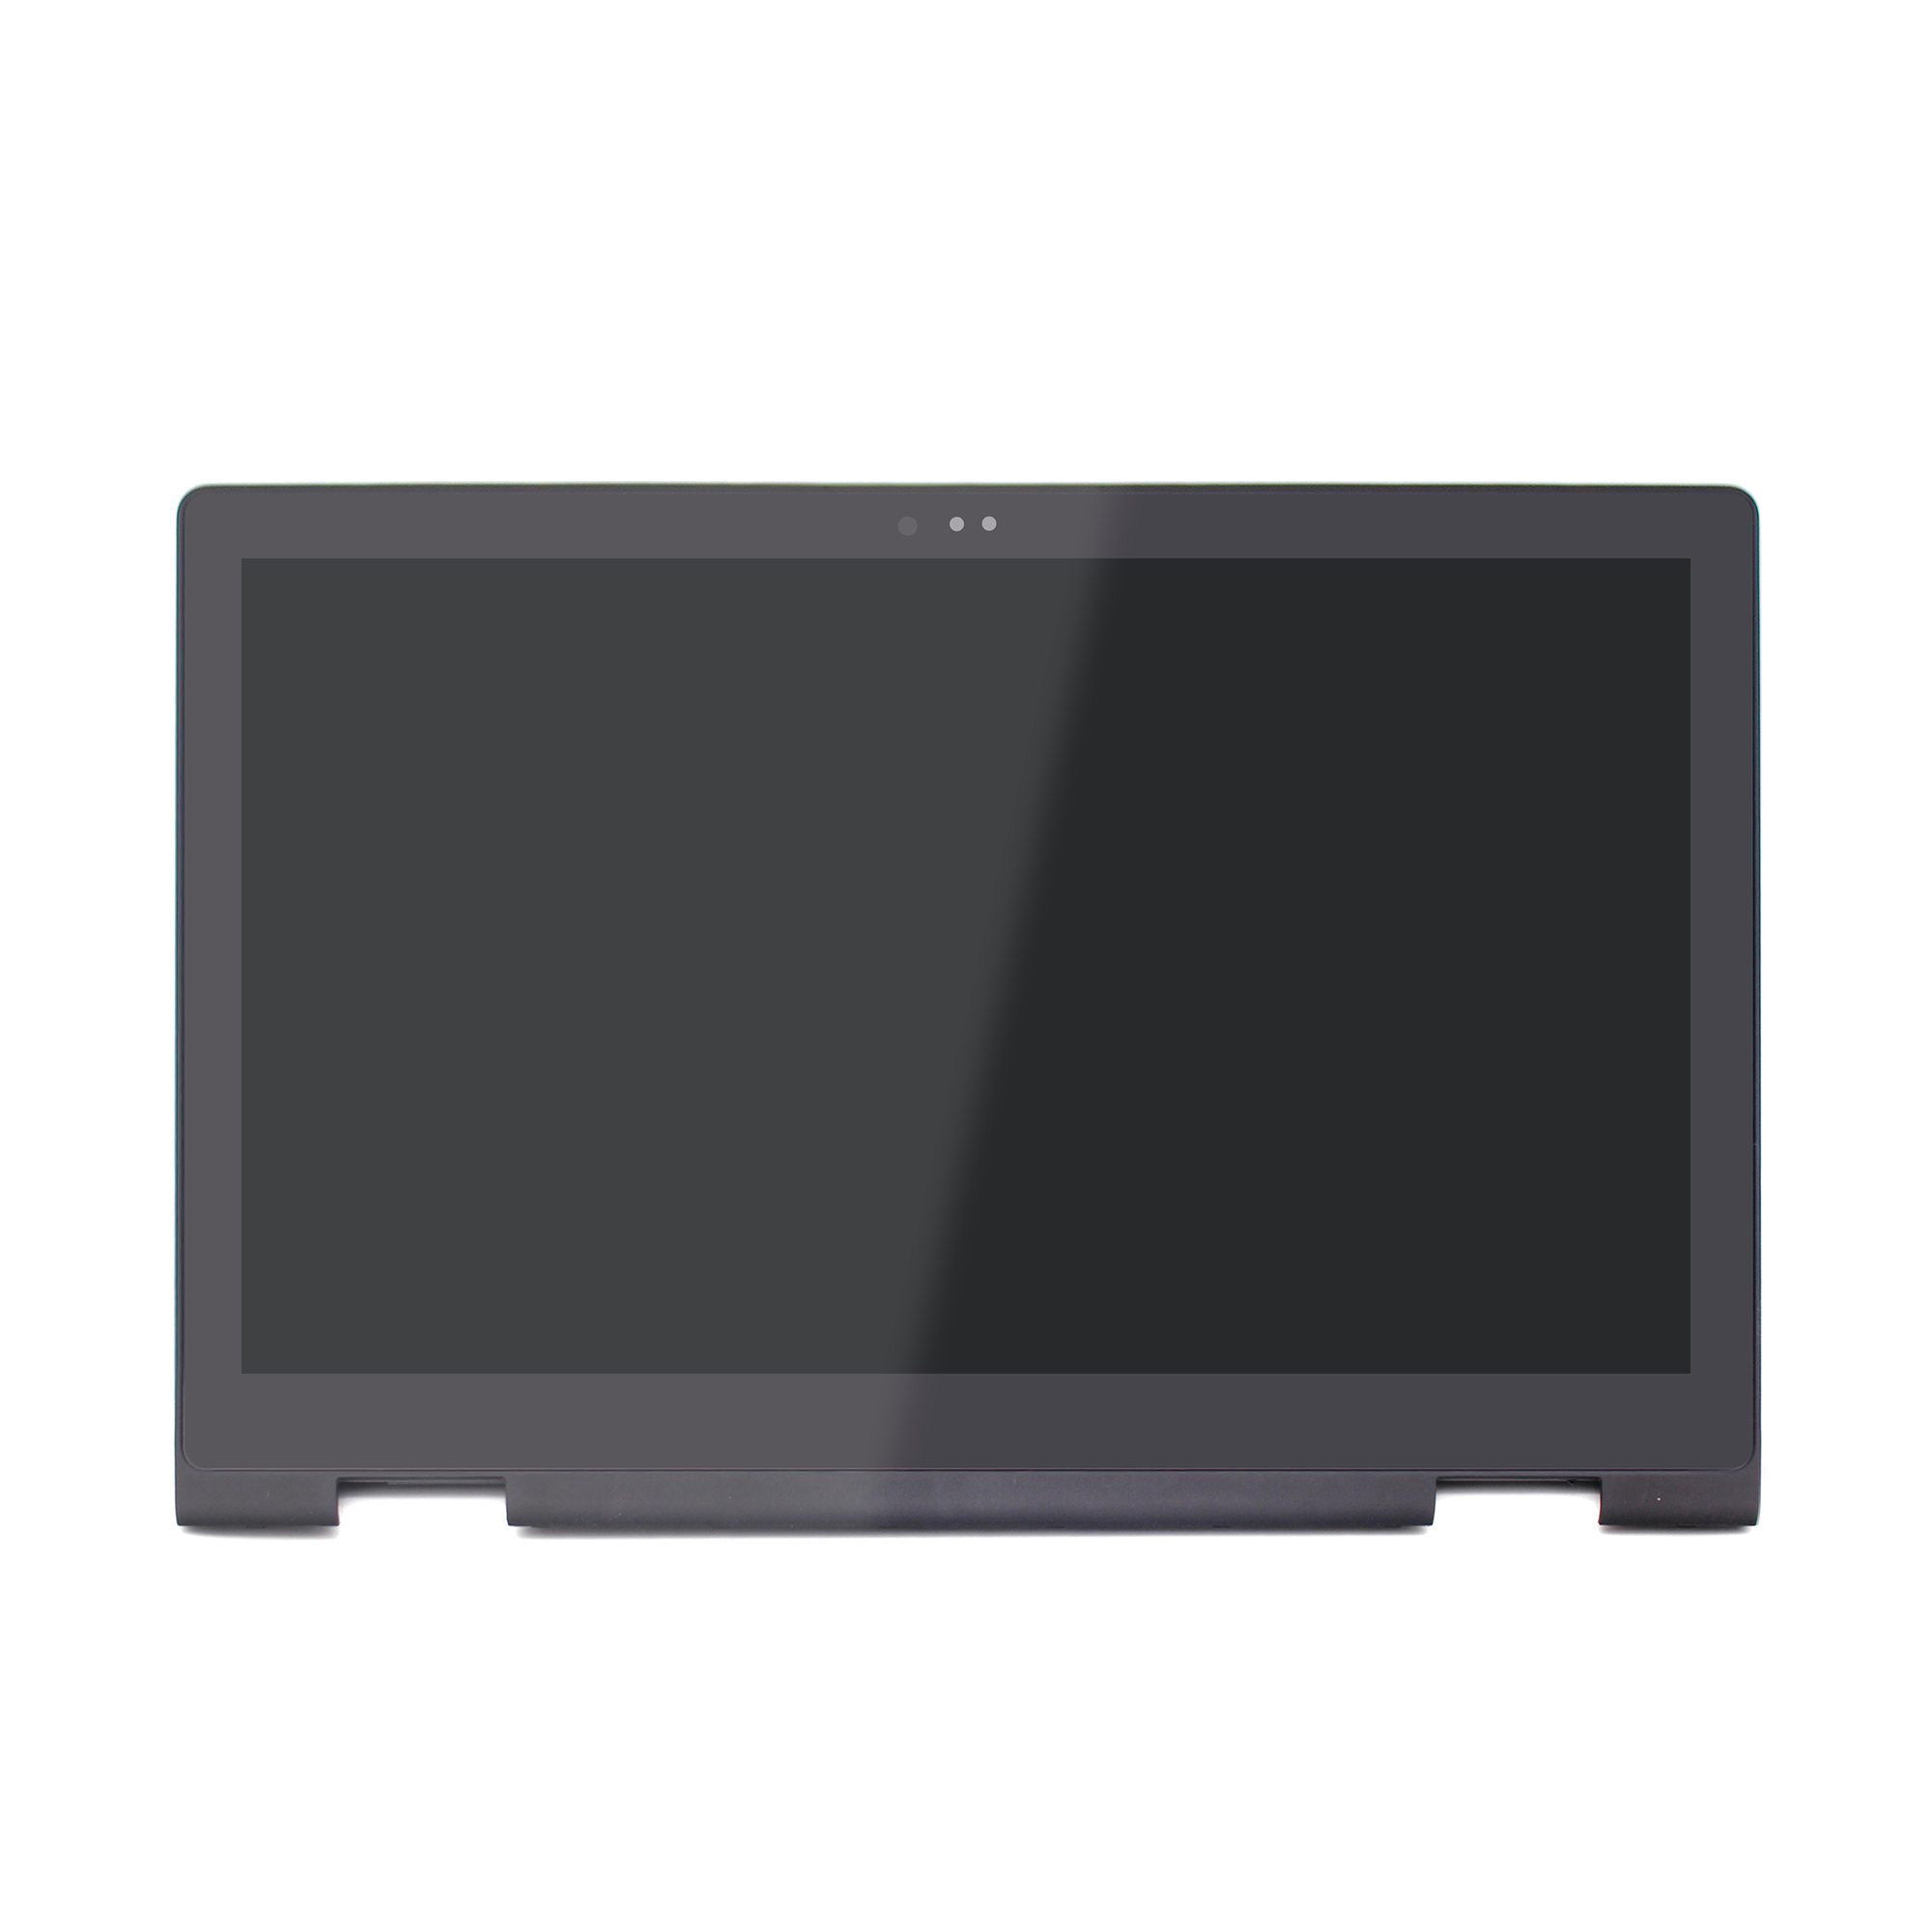 For Dell Inspiron 15 5568 5578 5579 7569 7579 P58F P58F001 LCD Display Screen Touch Glass Digitizer Panel Assembly B156HAB01.0